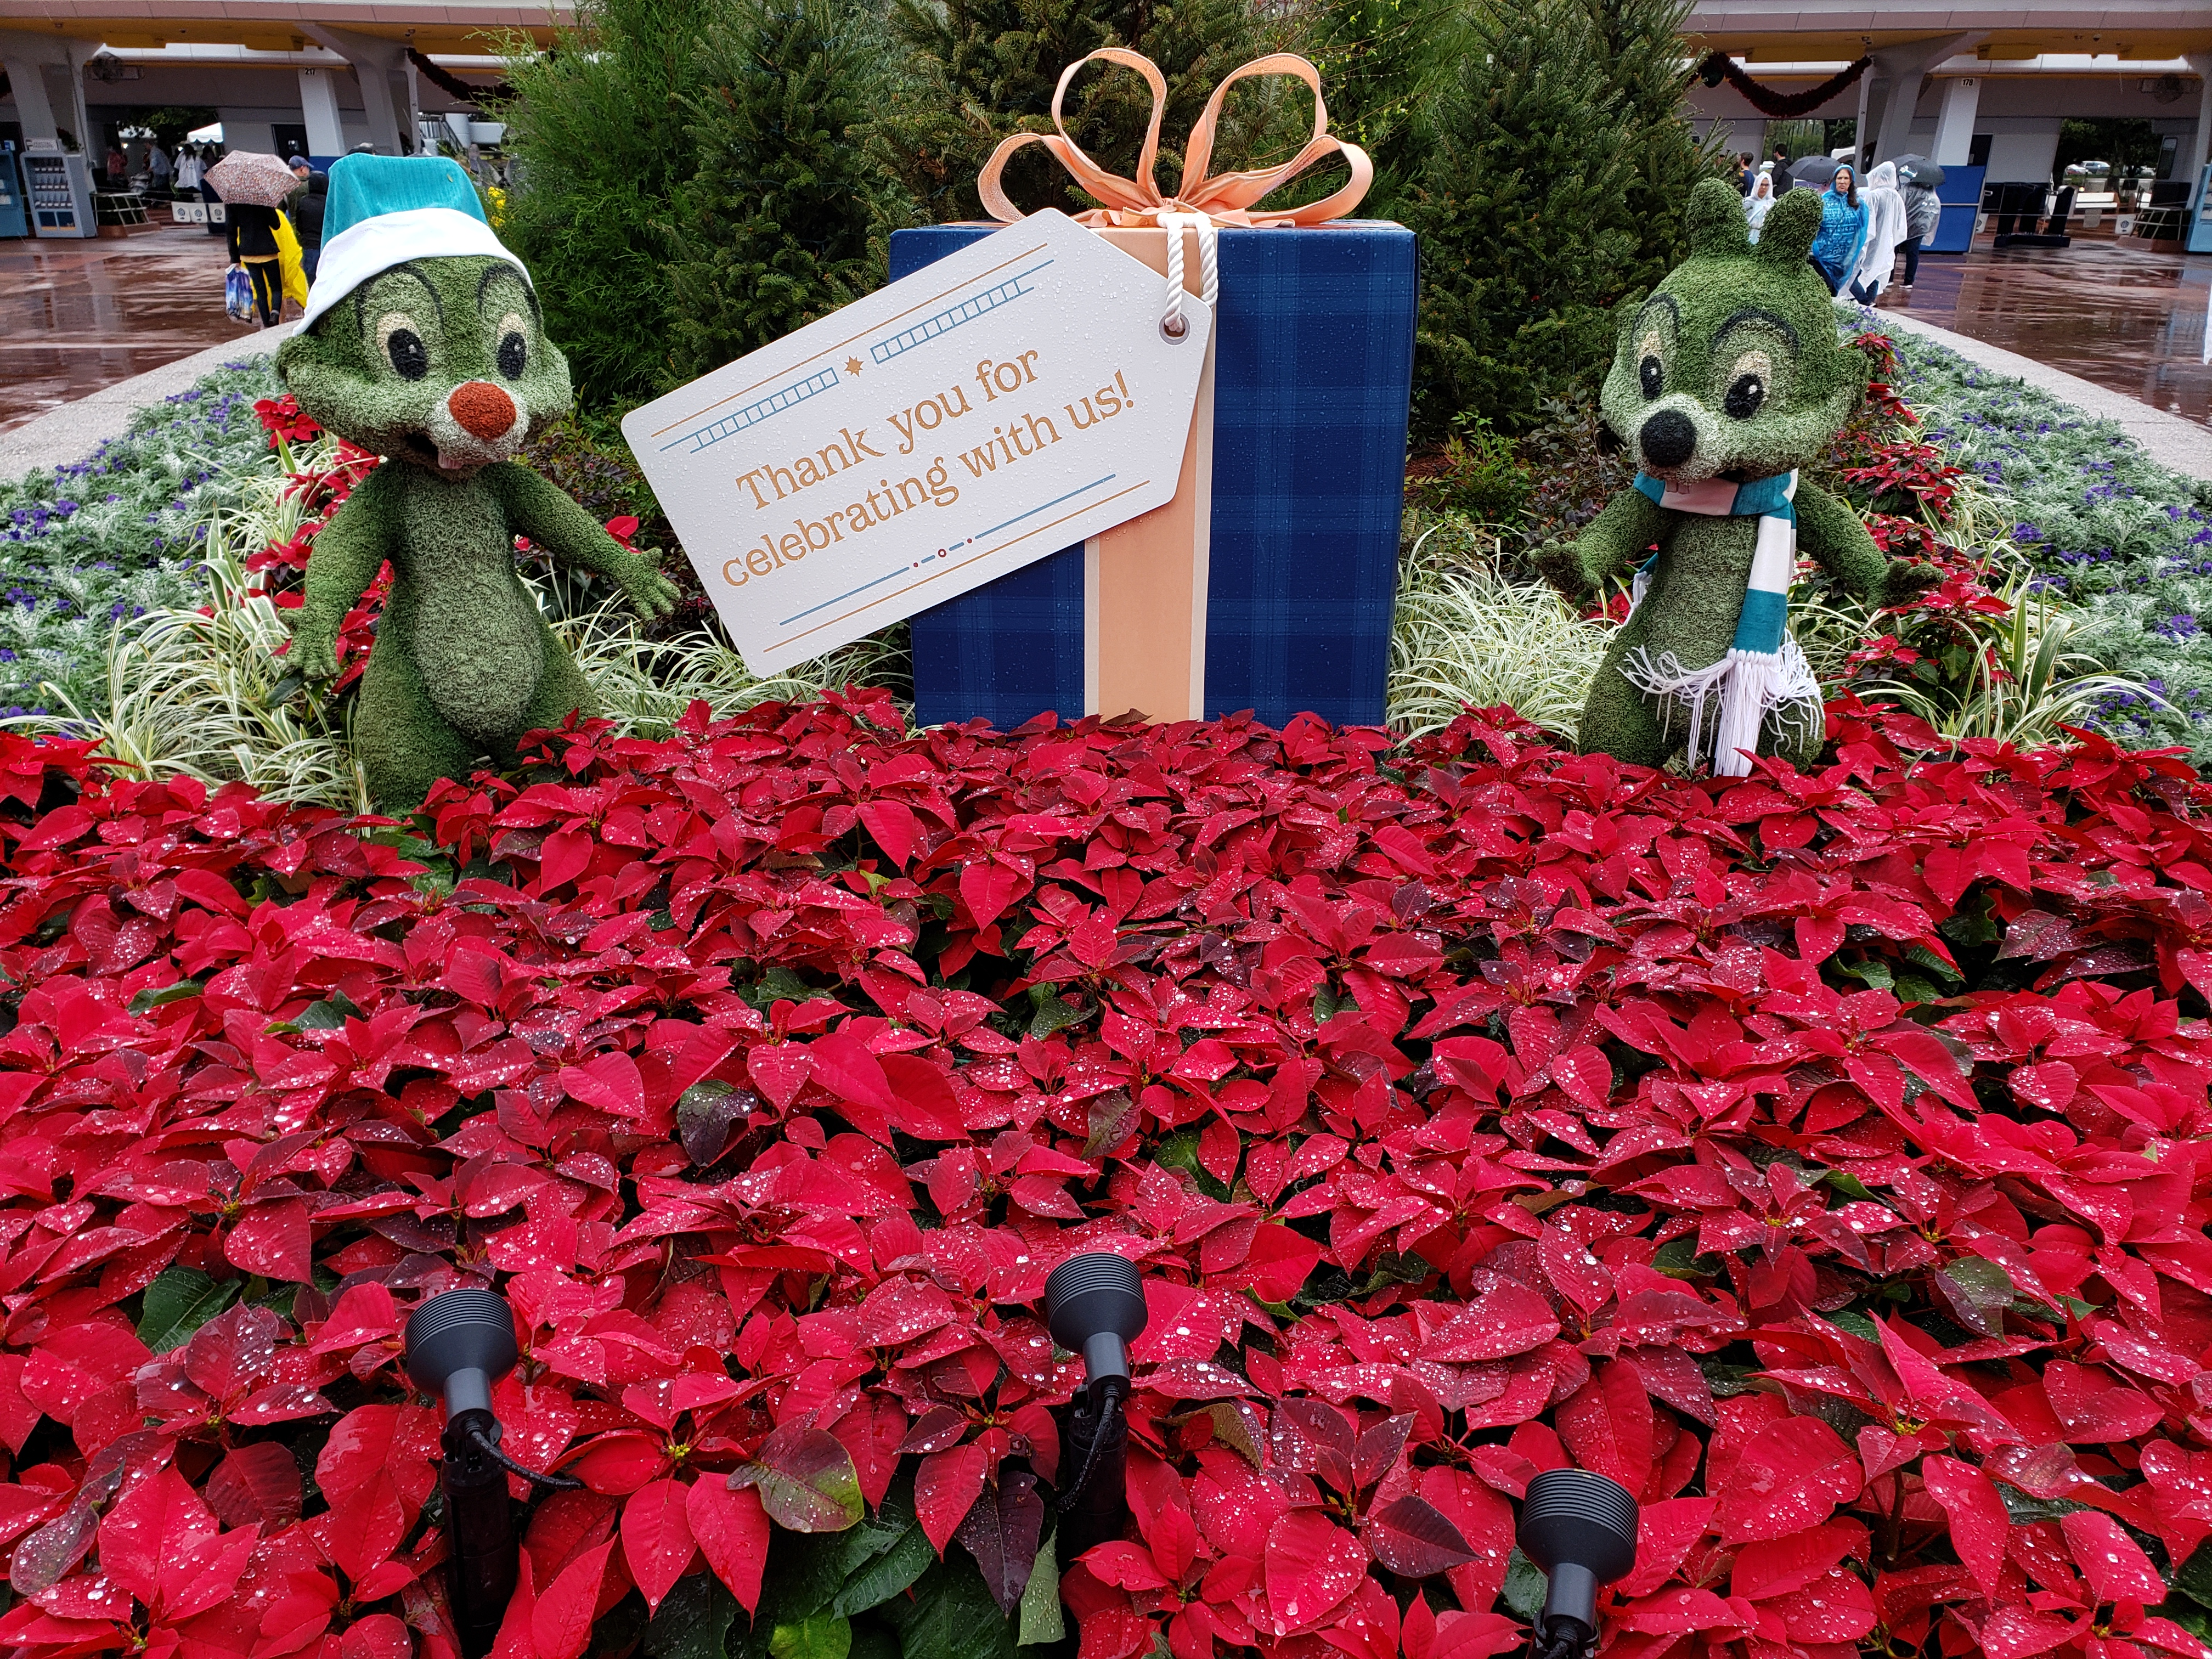 Chip and Dale holiday topiaries